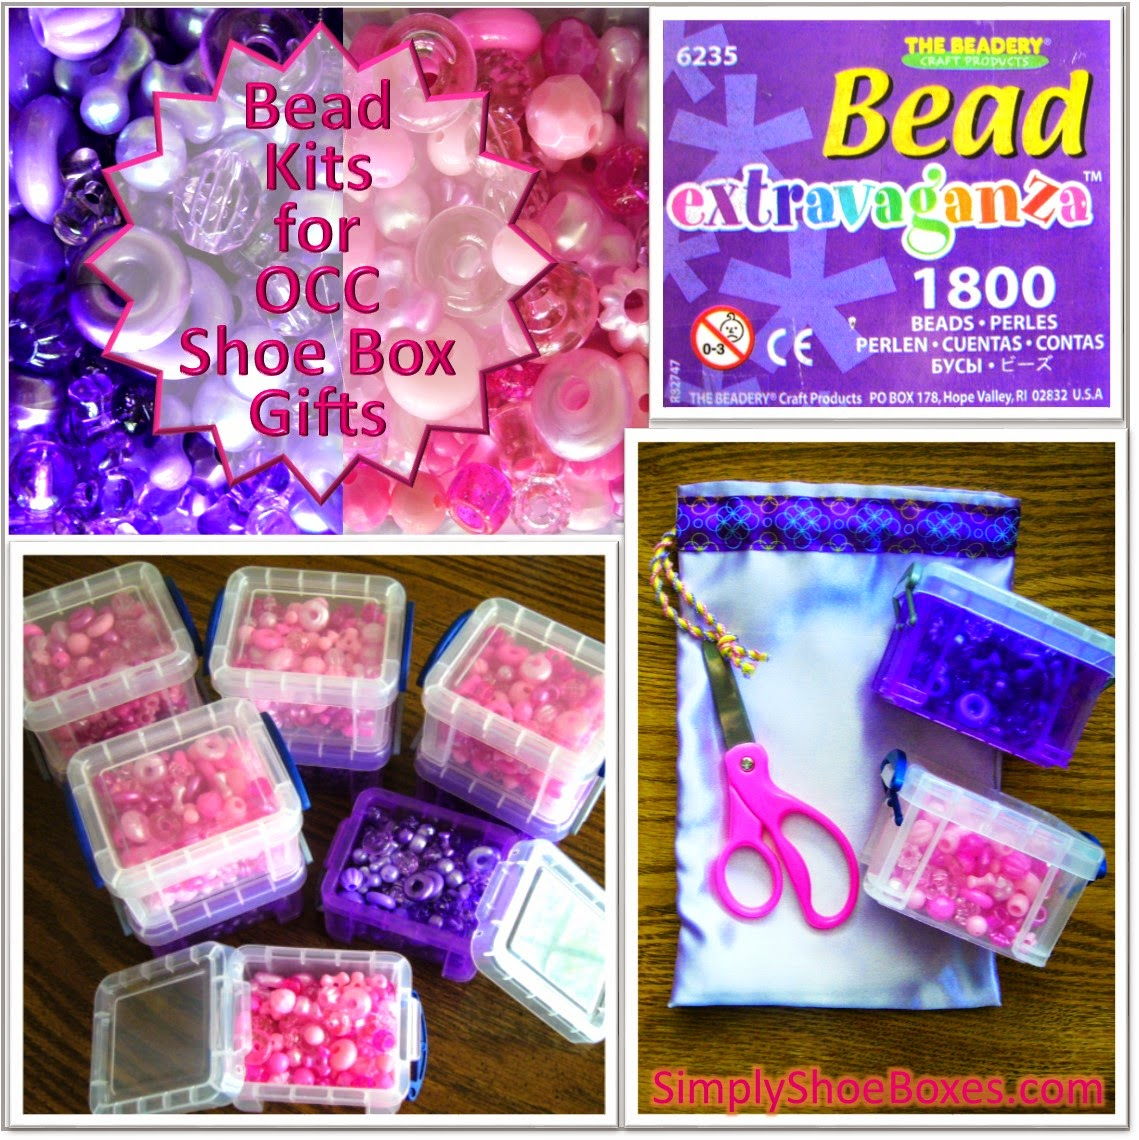 Bead Kits for Operation Christmas Child